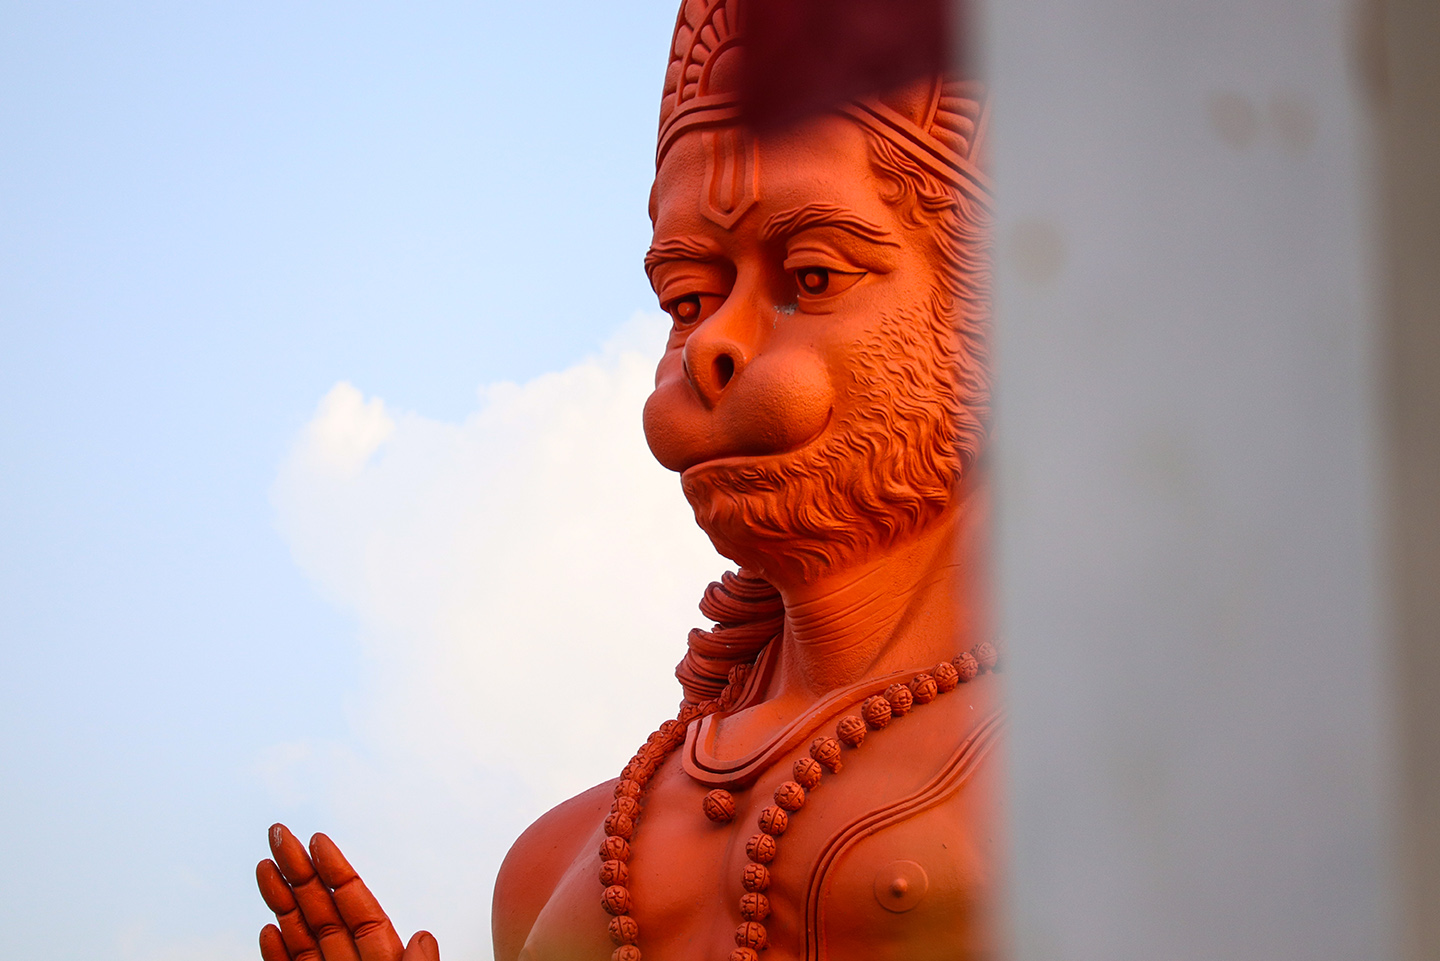 Lord Hanuman, Lord India, Rama, Power, chattarpur mandir